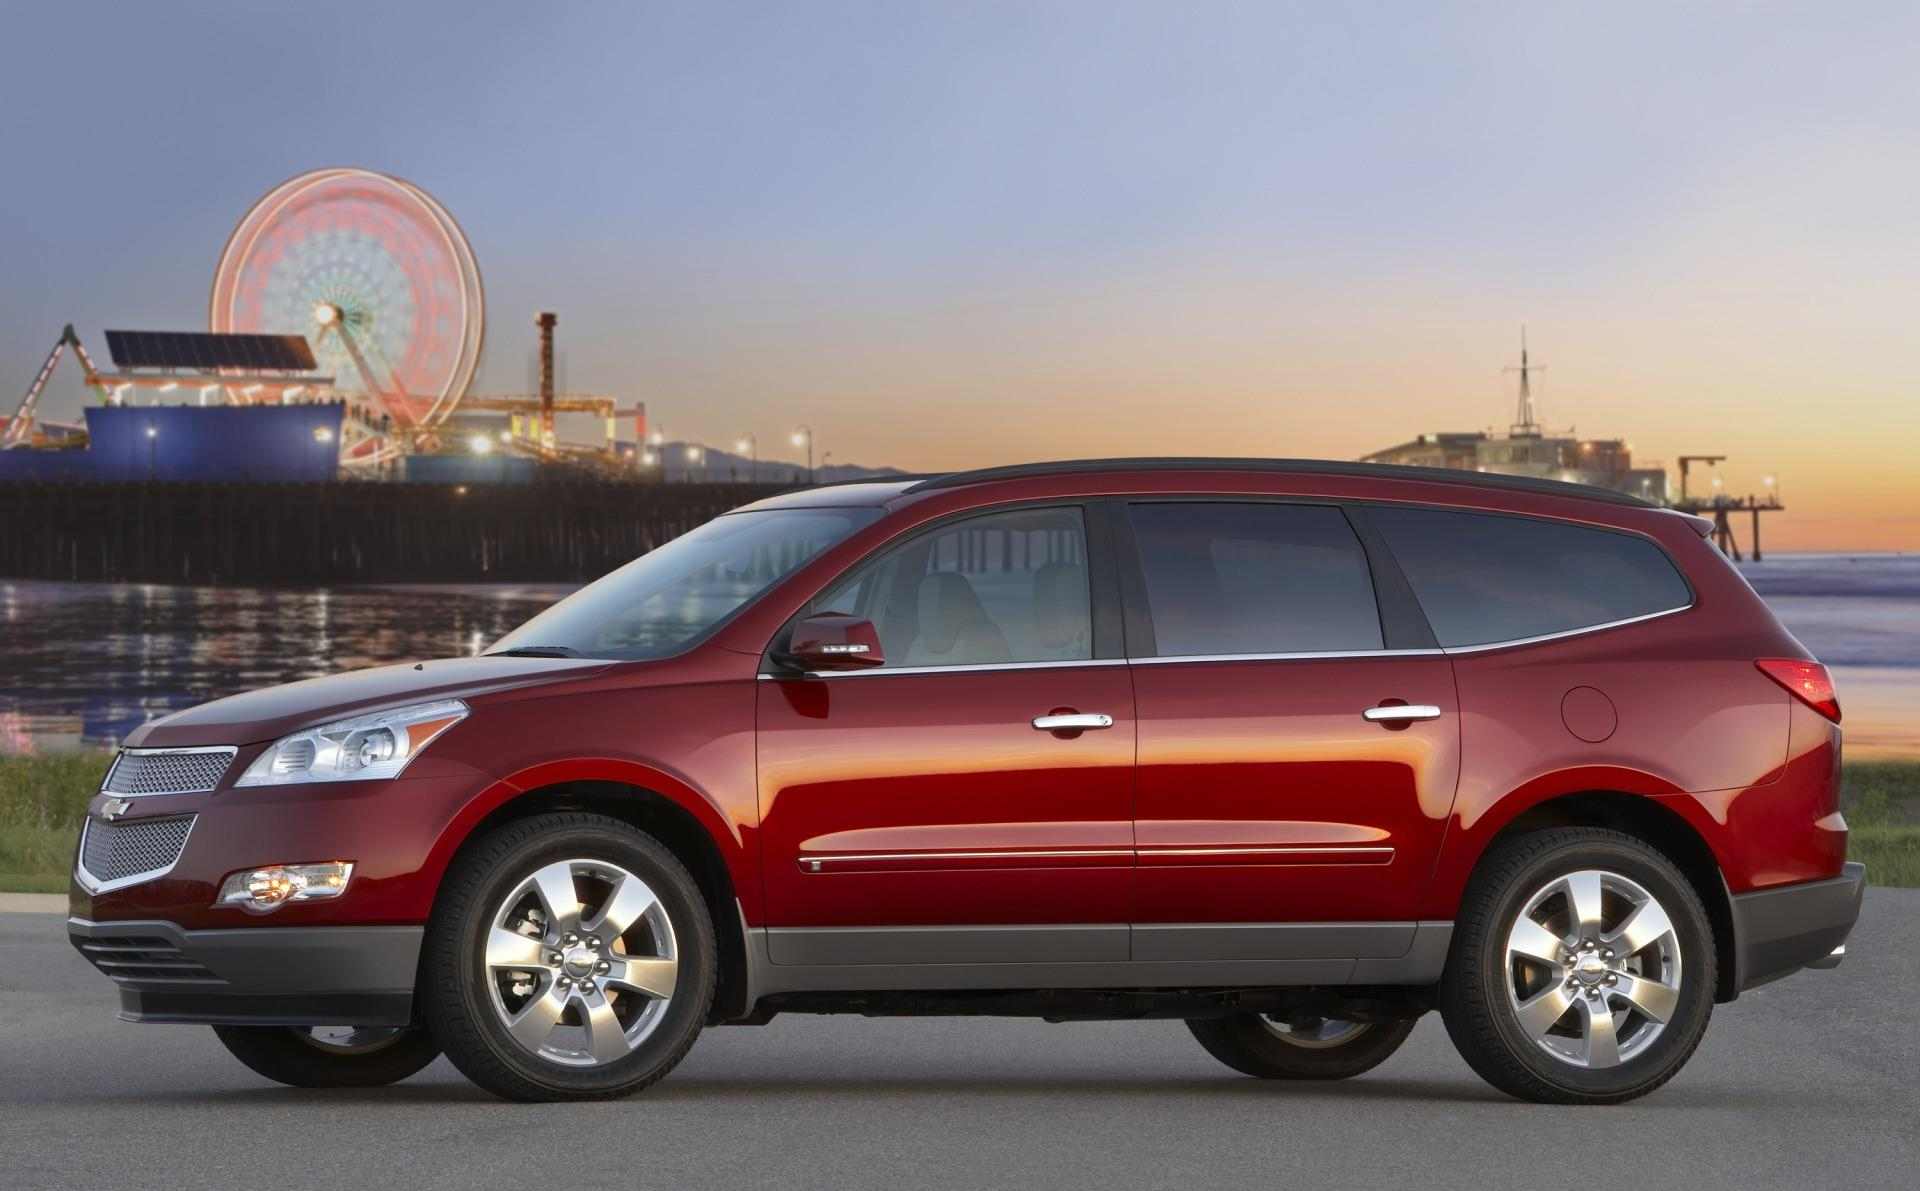 2011 chevrolet traverse. Cars Review. Best American Auto & Cars Review